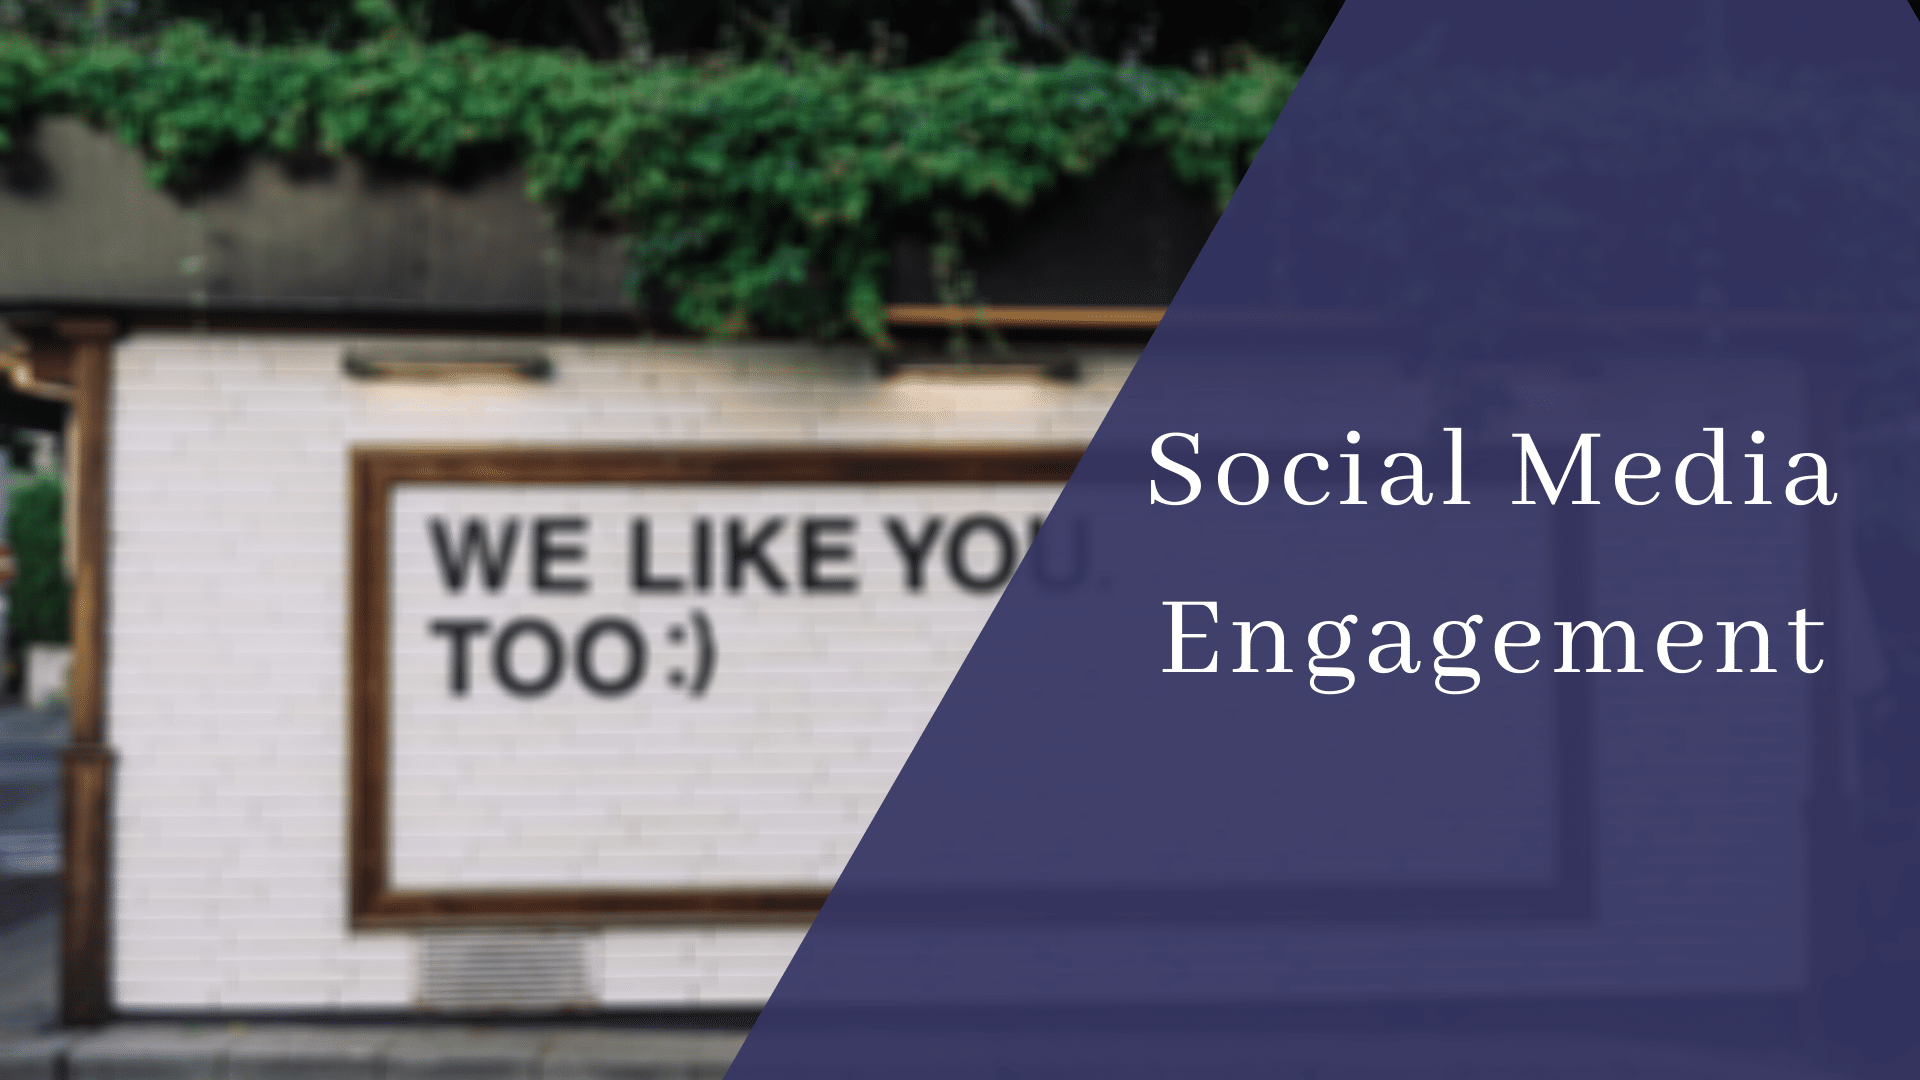 social-media-commenting-engagement